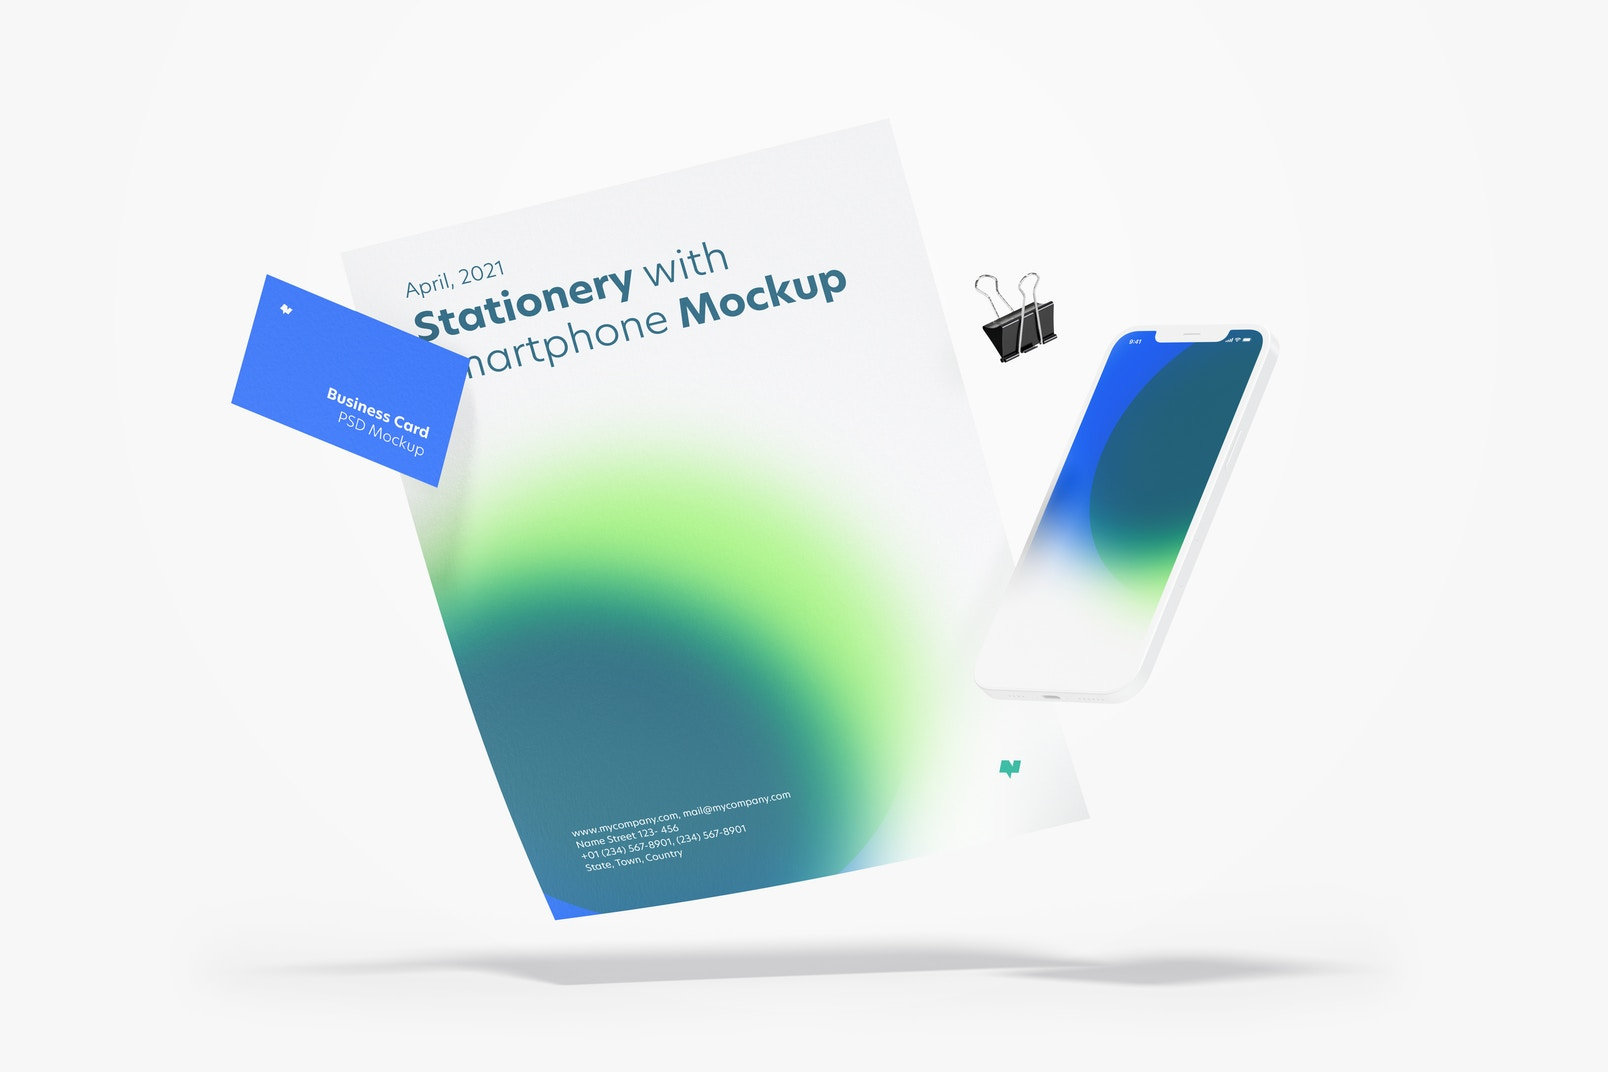 Stationery with Smartphone Mockup, Floating